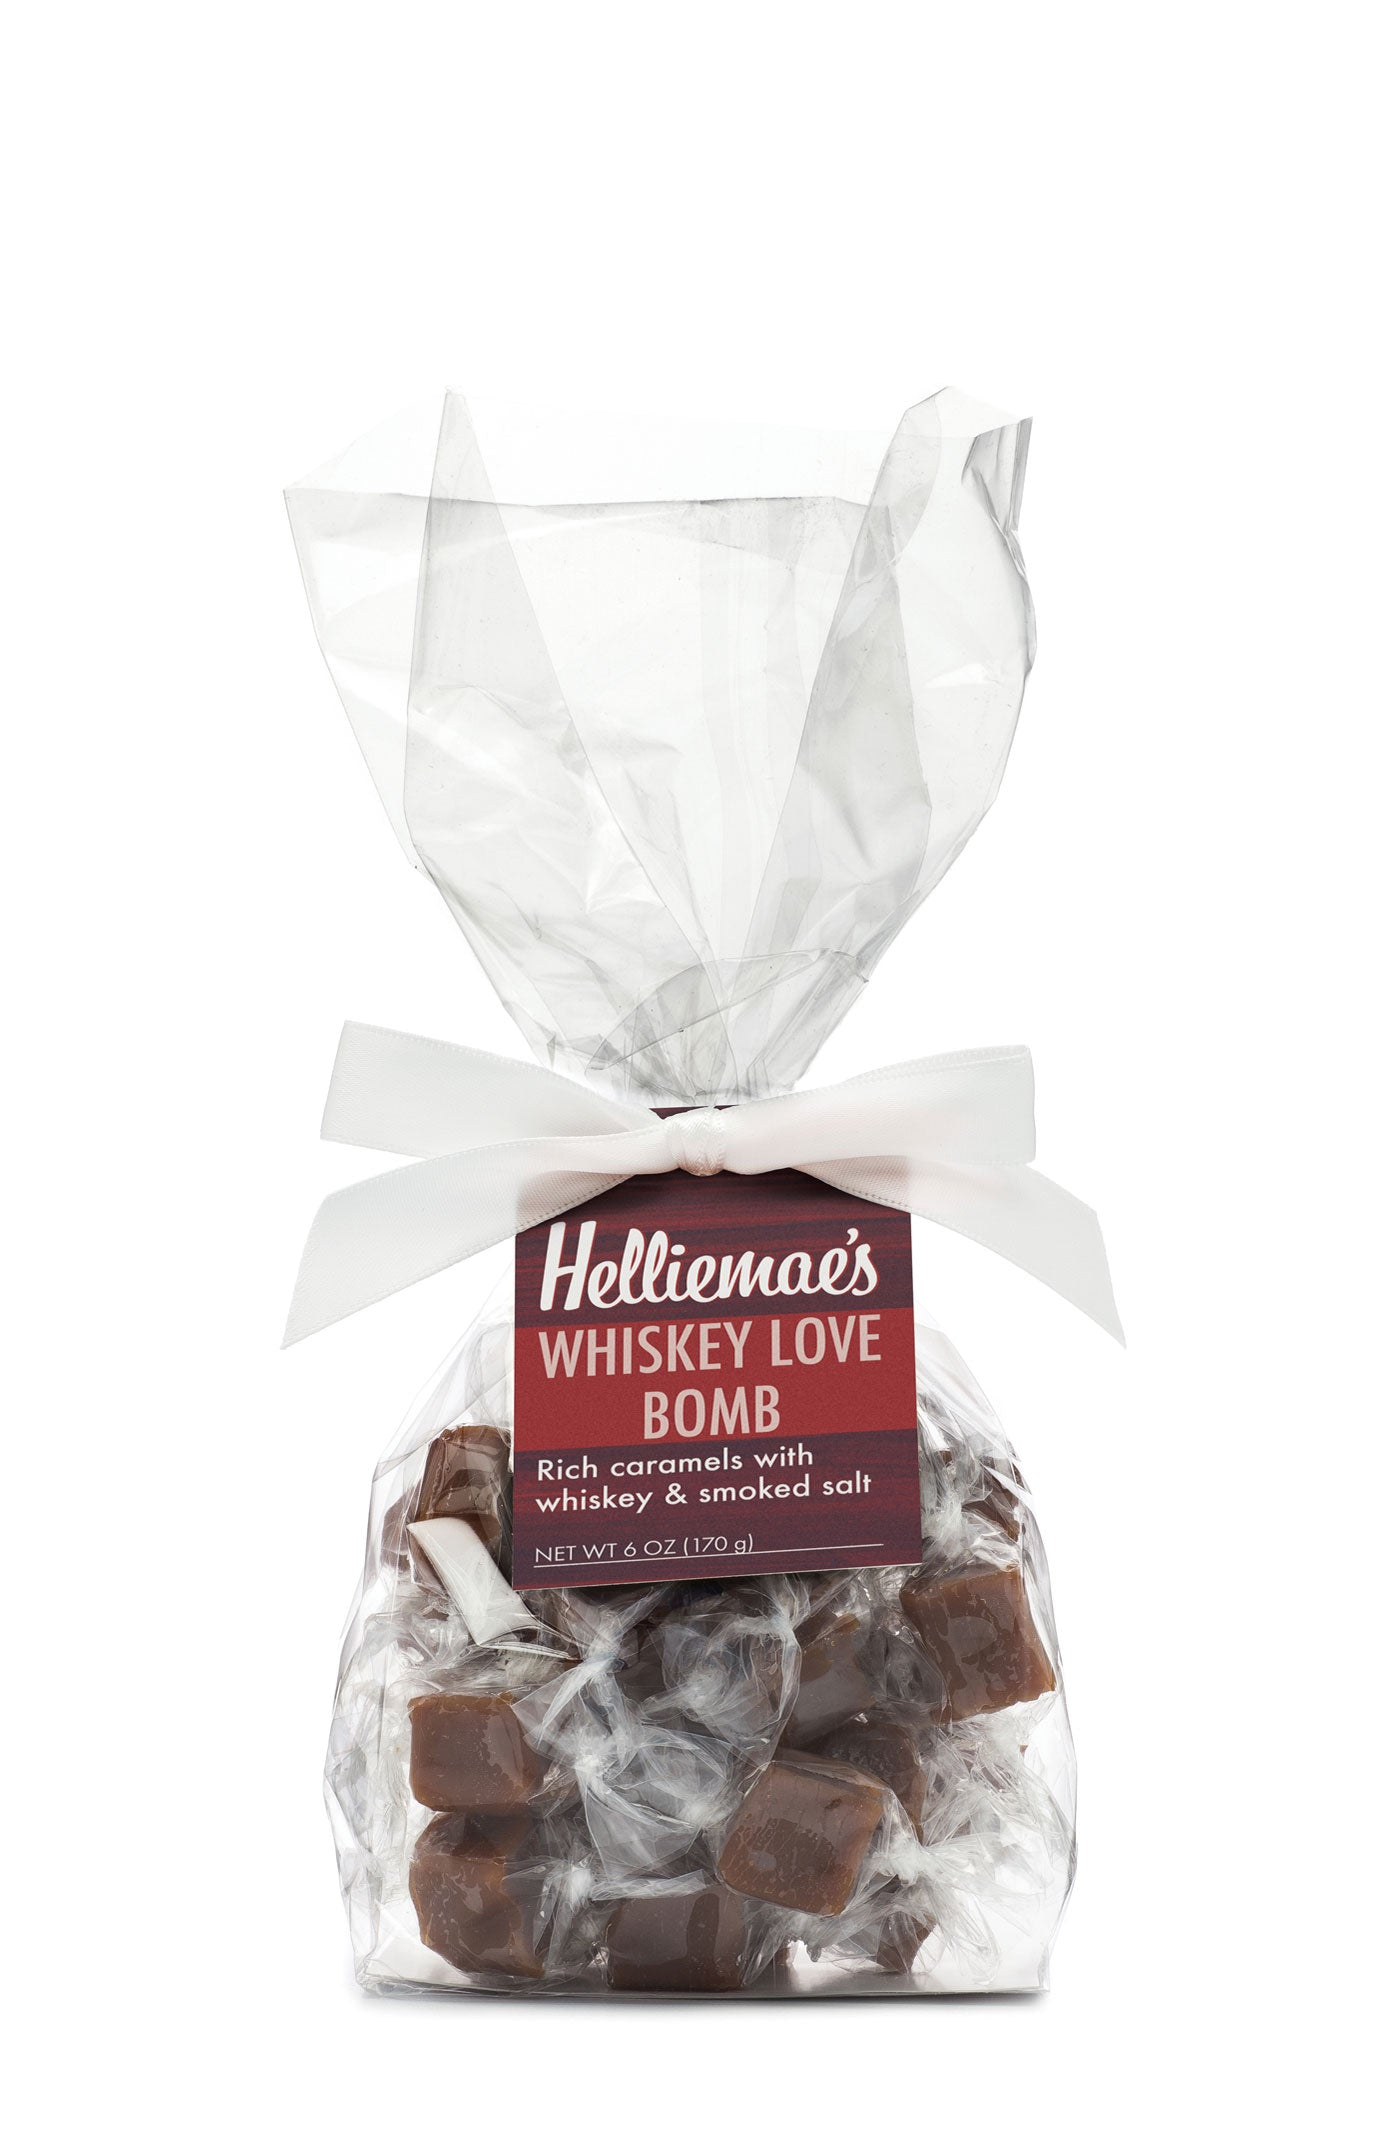 Helliemae's Whiskey Love Bomb Caramels medium gift bag, clear cello bag with gathered top, fastened with white satin ribbon and colorful maroon hangtag, with effect of milk paint on a barn wall.